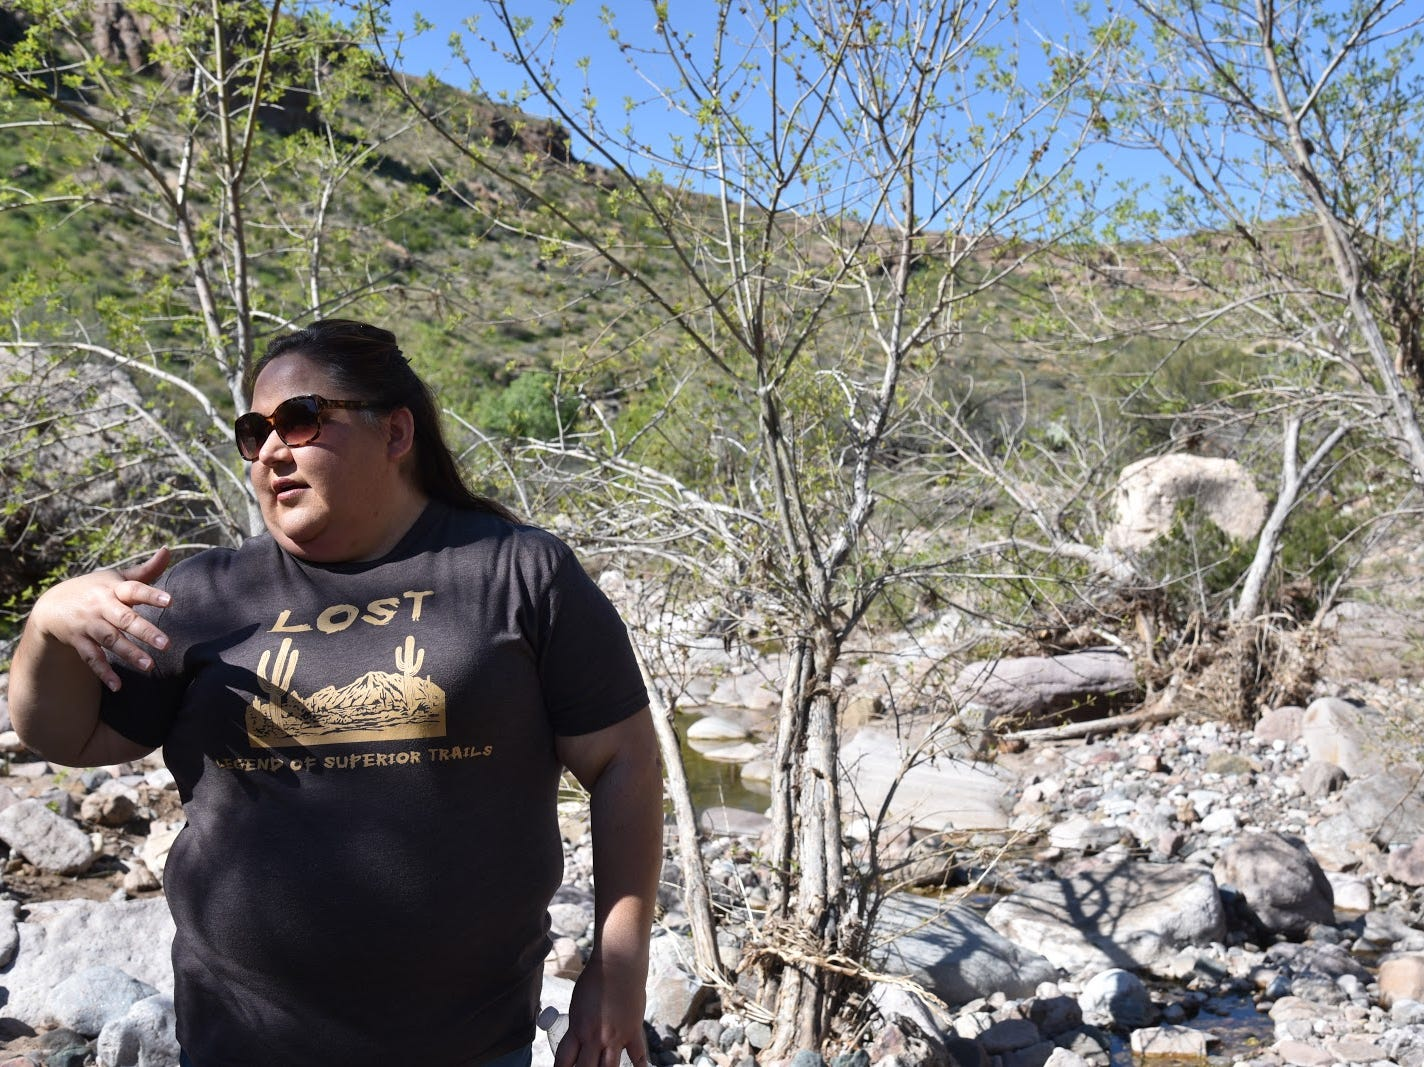 Mila Besich, mayor of Superior, hiking in Arnett Canyon.